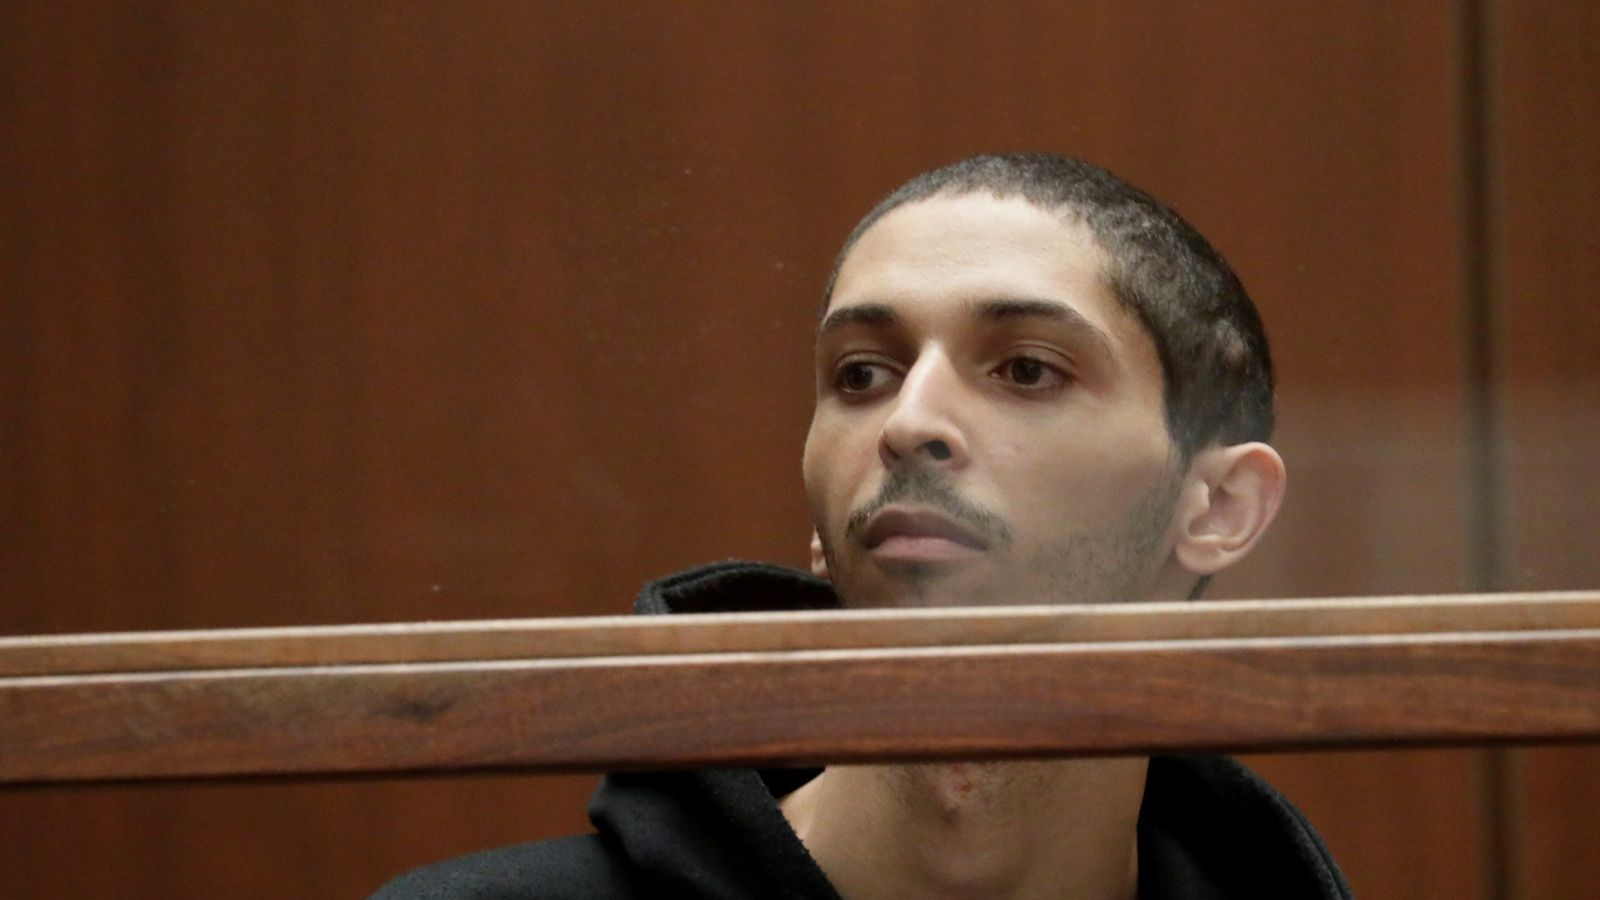 Gamer admits deadly 'swatting' hoax that led police to fatally shoot man